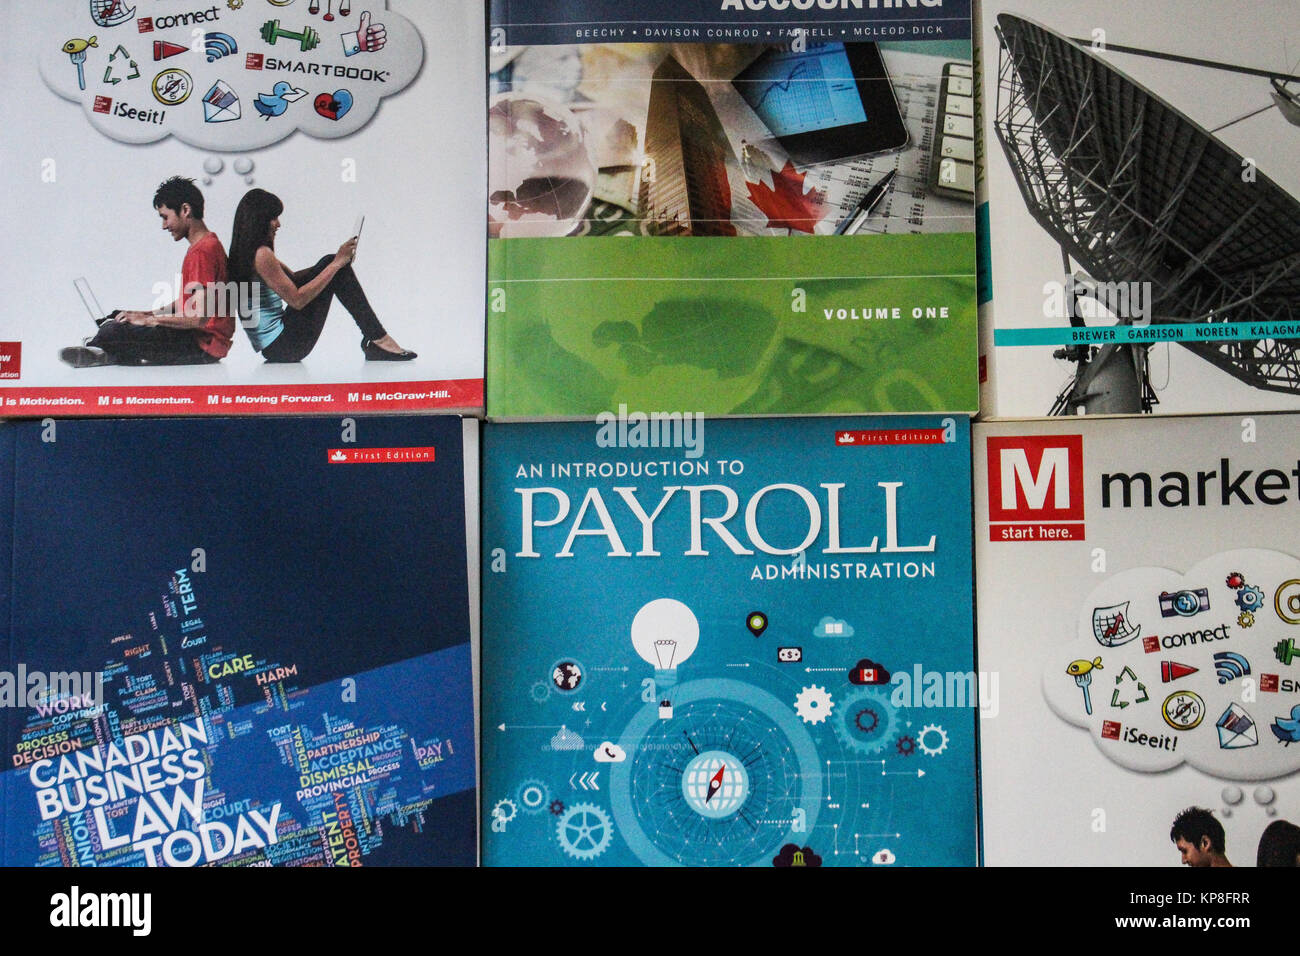 mcgraw hill textbooks for business programs lined up showing a stock